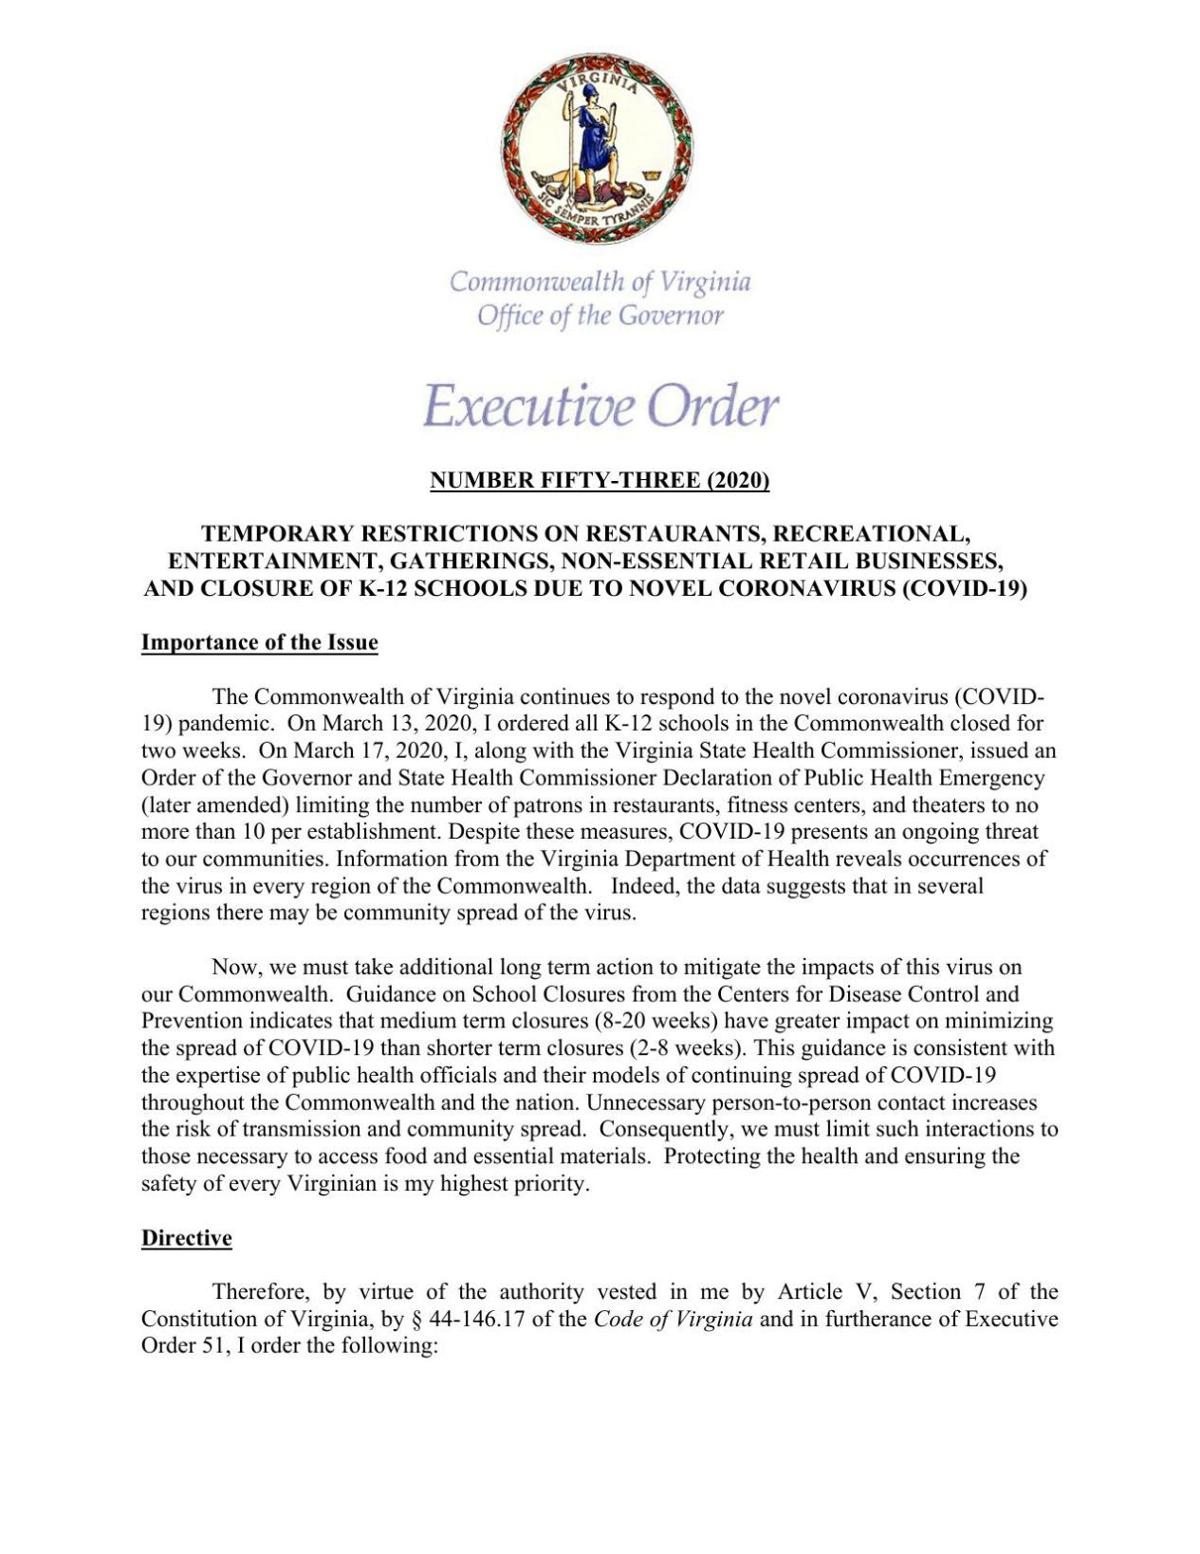 Executive Order 53: Temporary restrictions for Virginia businesses due to coronavirus